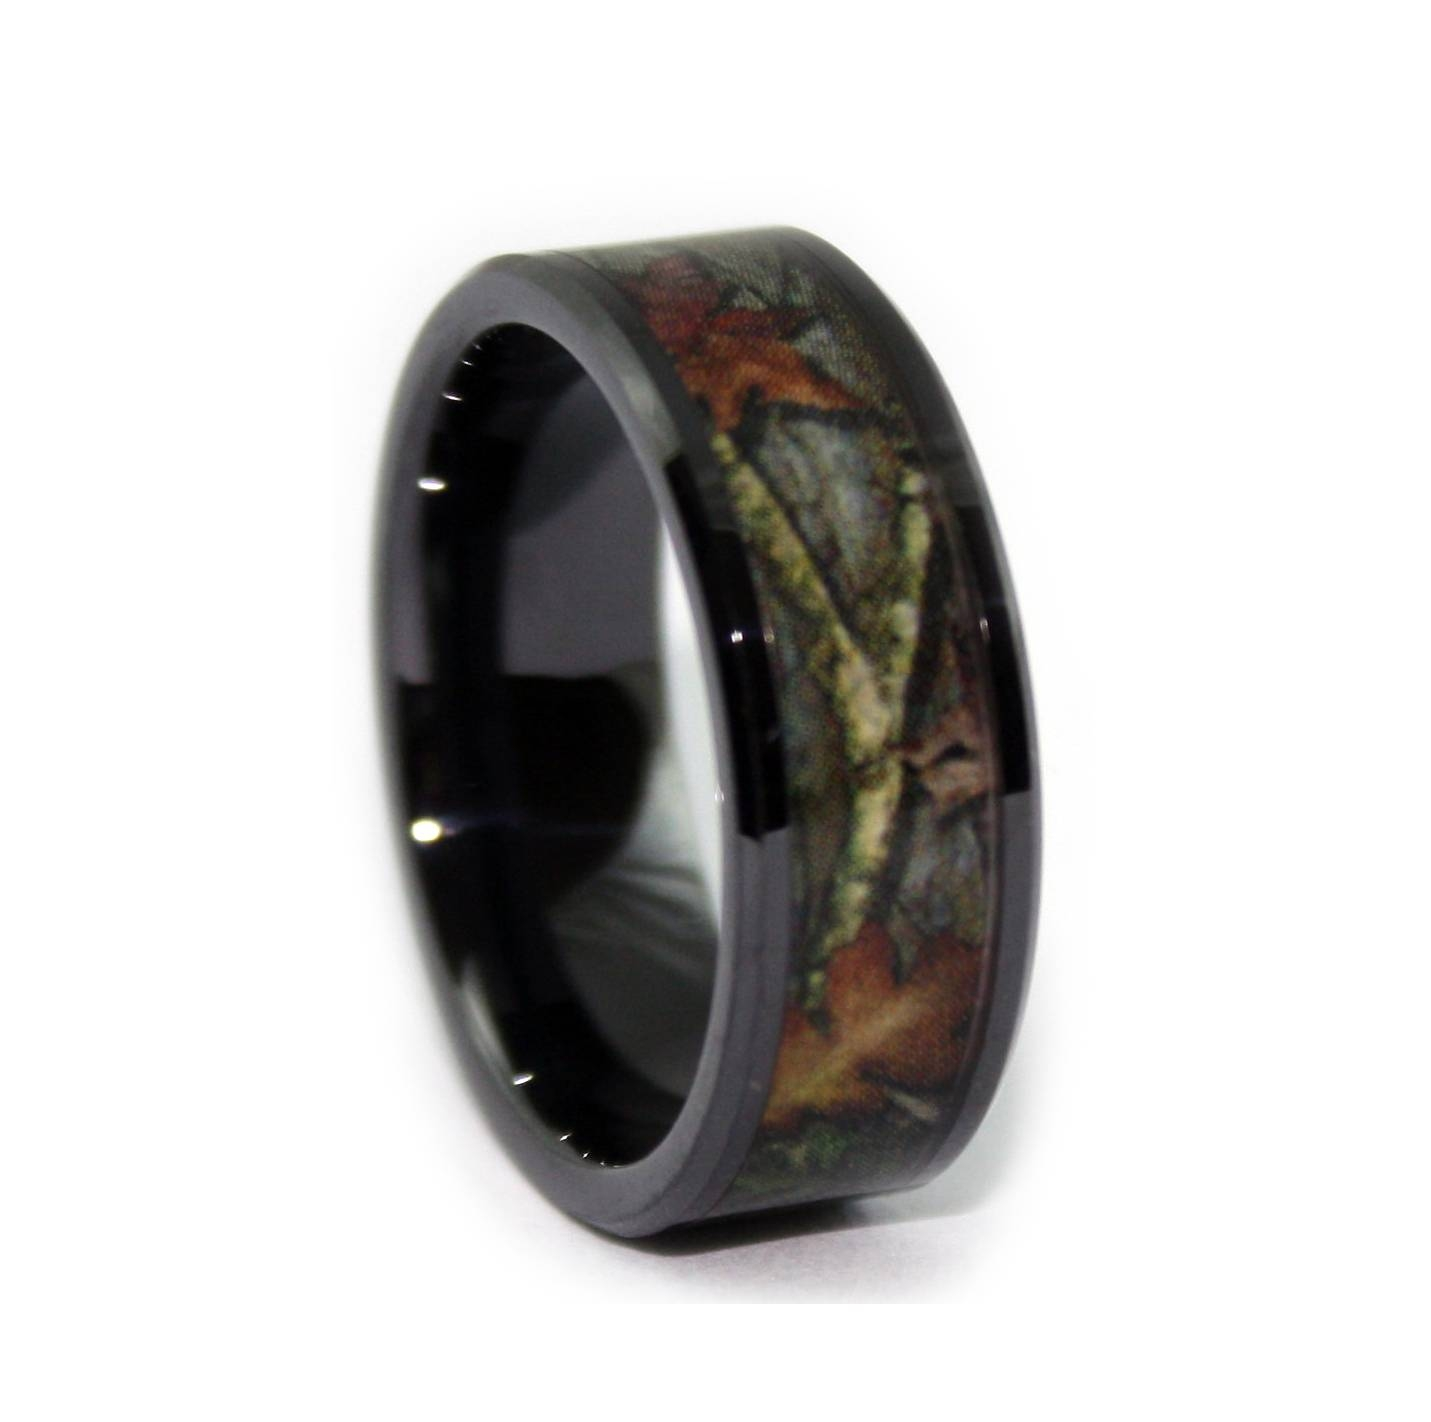 Camo Wedding Rings – Black Ceramic Ring – Camouflage Band Regarding Camo Wedding Bands (View 2 of 15)